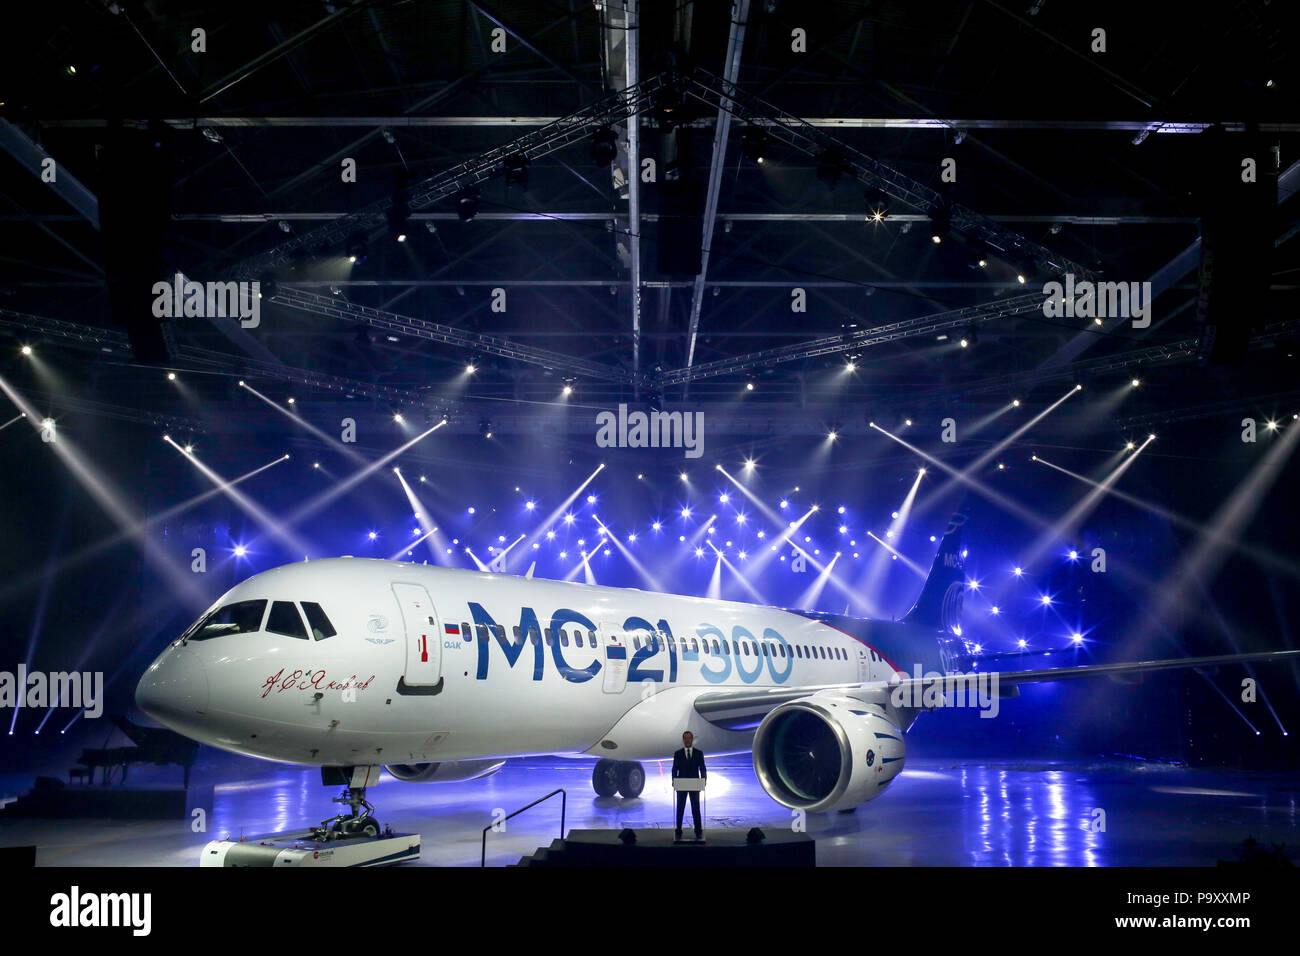 8th June 2016. The first built Irkut MC-21-300 civil jet airplane rolled out at Irkutsk Aviation Plant, Russia. - Stock Image